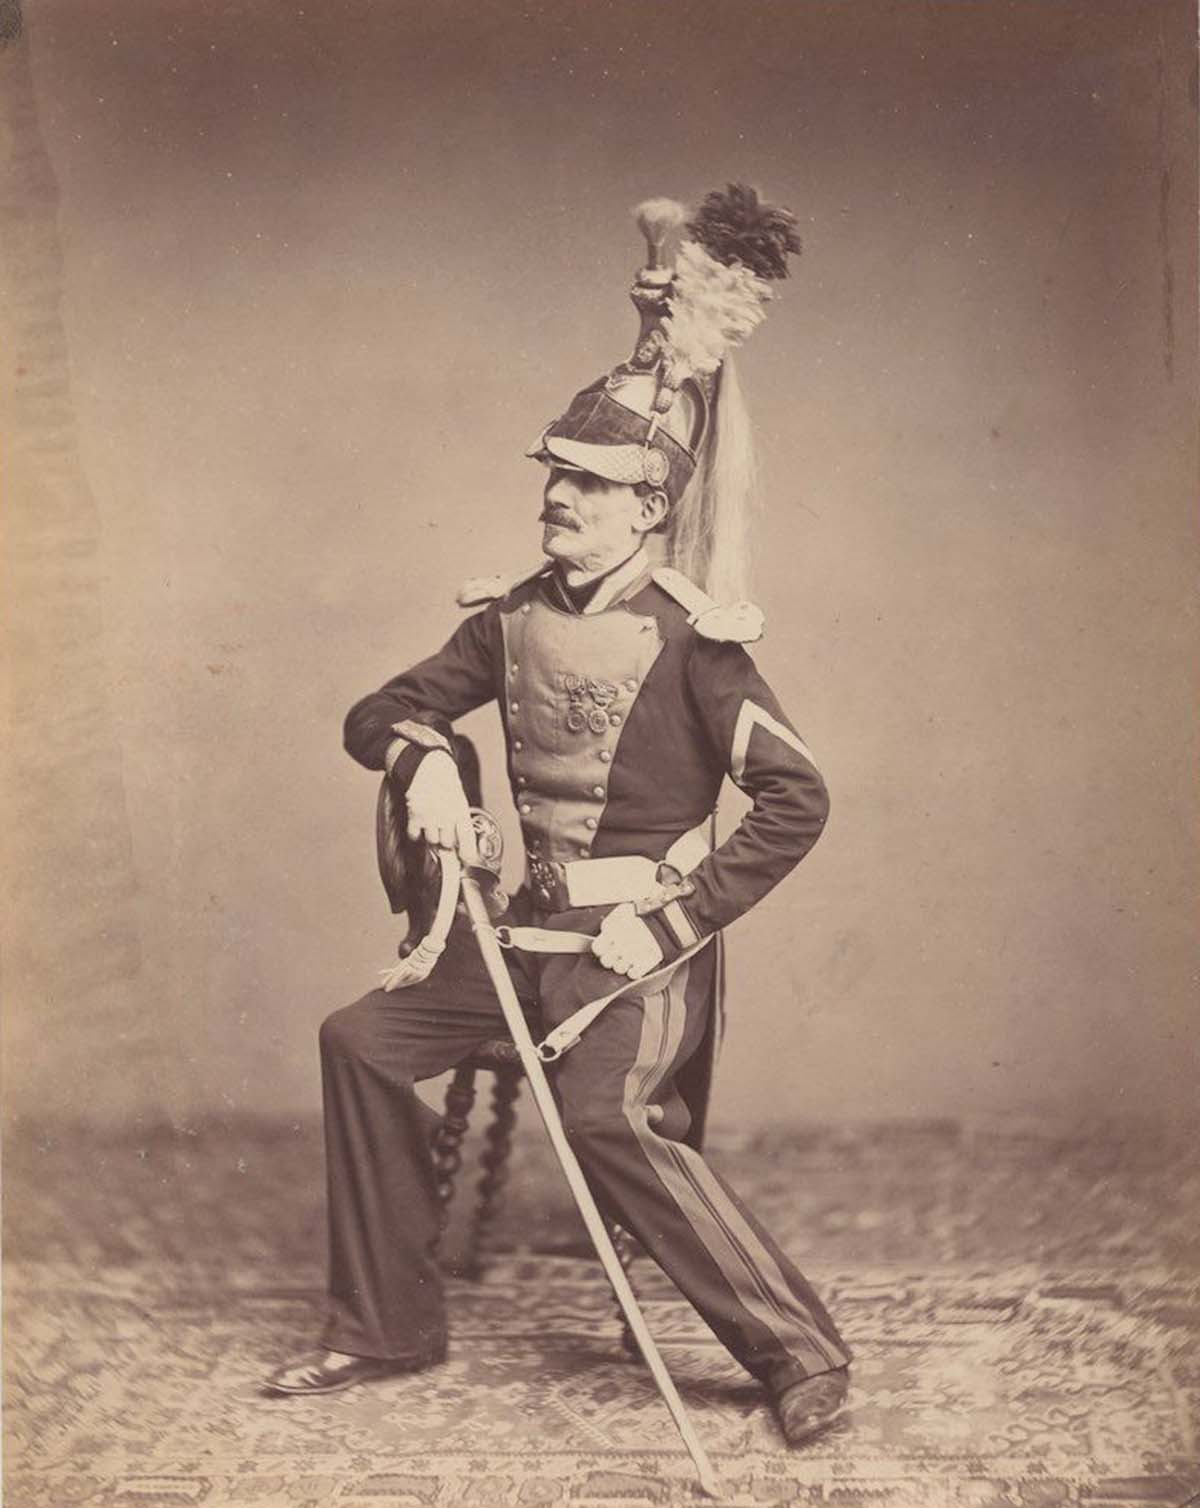 Monsieur Mauban of the 8th Dragoon Regiment of 1815.